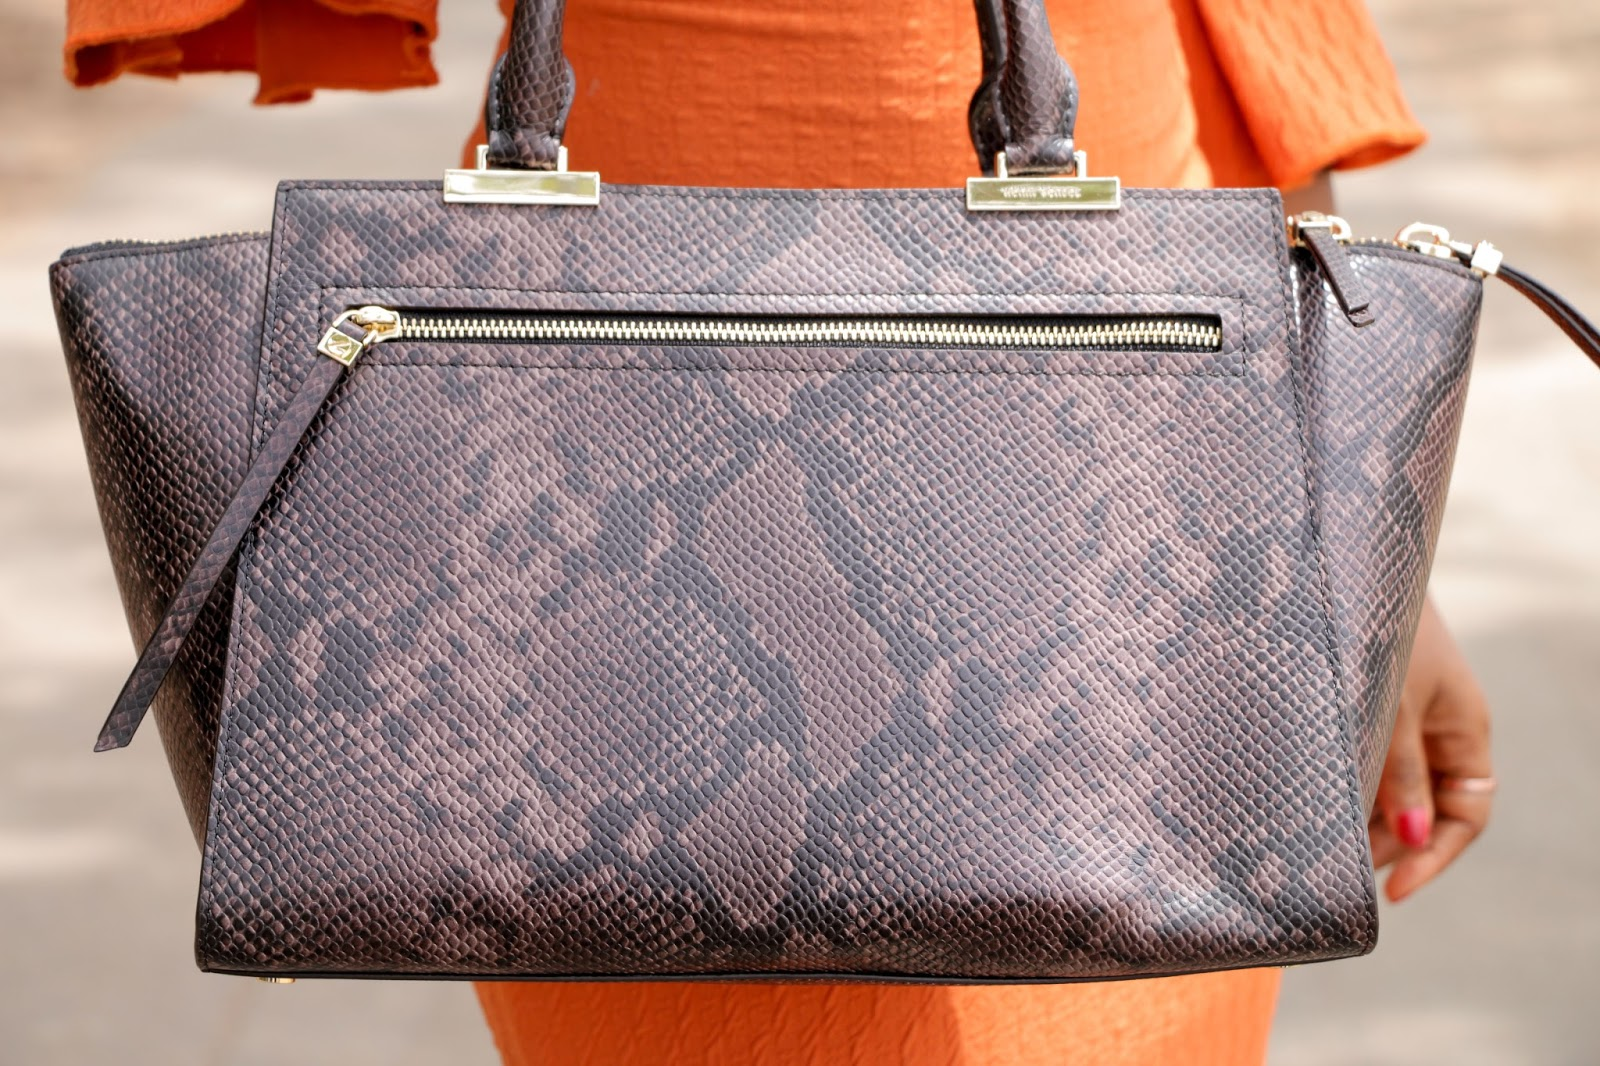 THE FLYGERIAN - Henri Bendel Snake Print Bag from The Flygerian